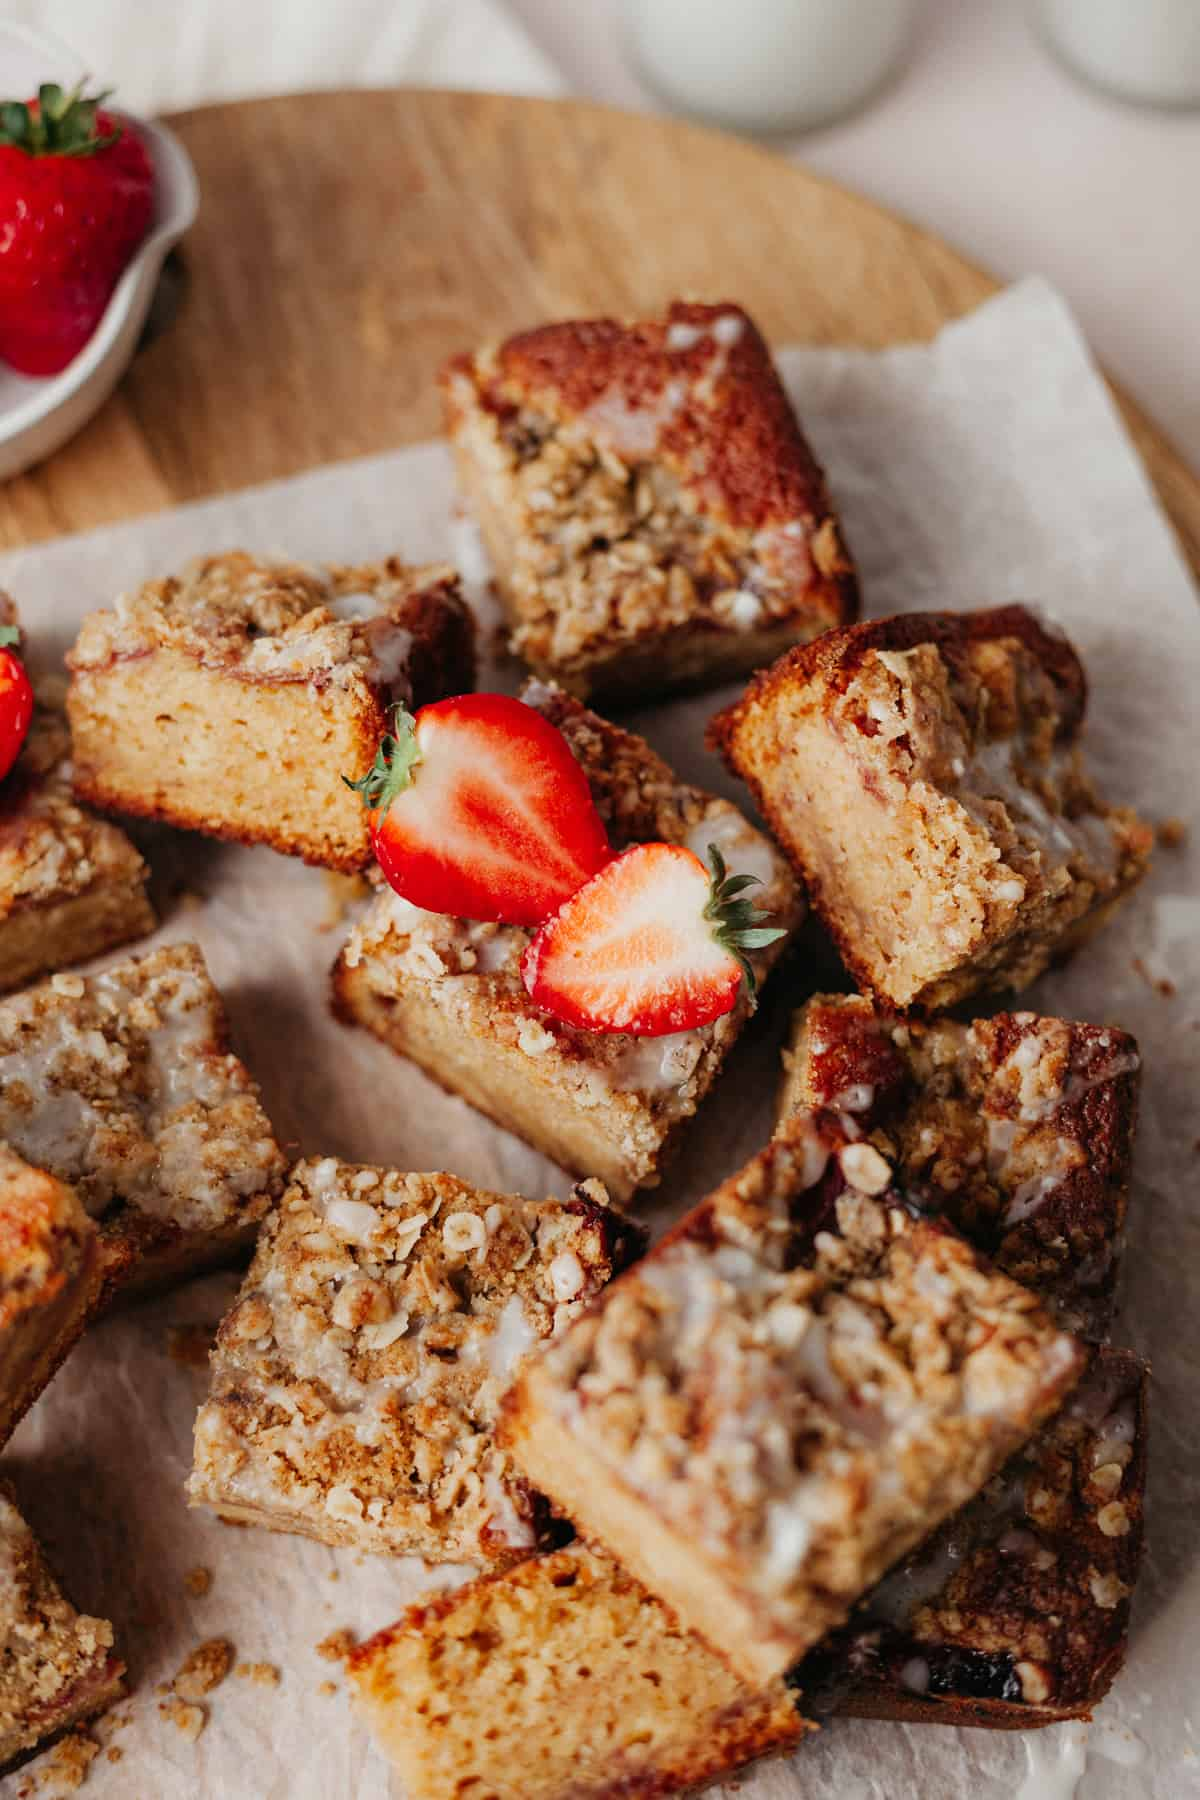 Squares of strawberry crumble cake on top of parchment paper. One square has a strawberry on top, which had been sliced in half.